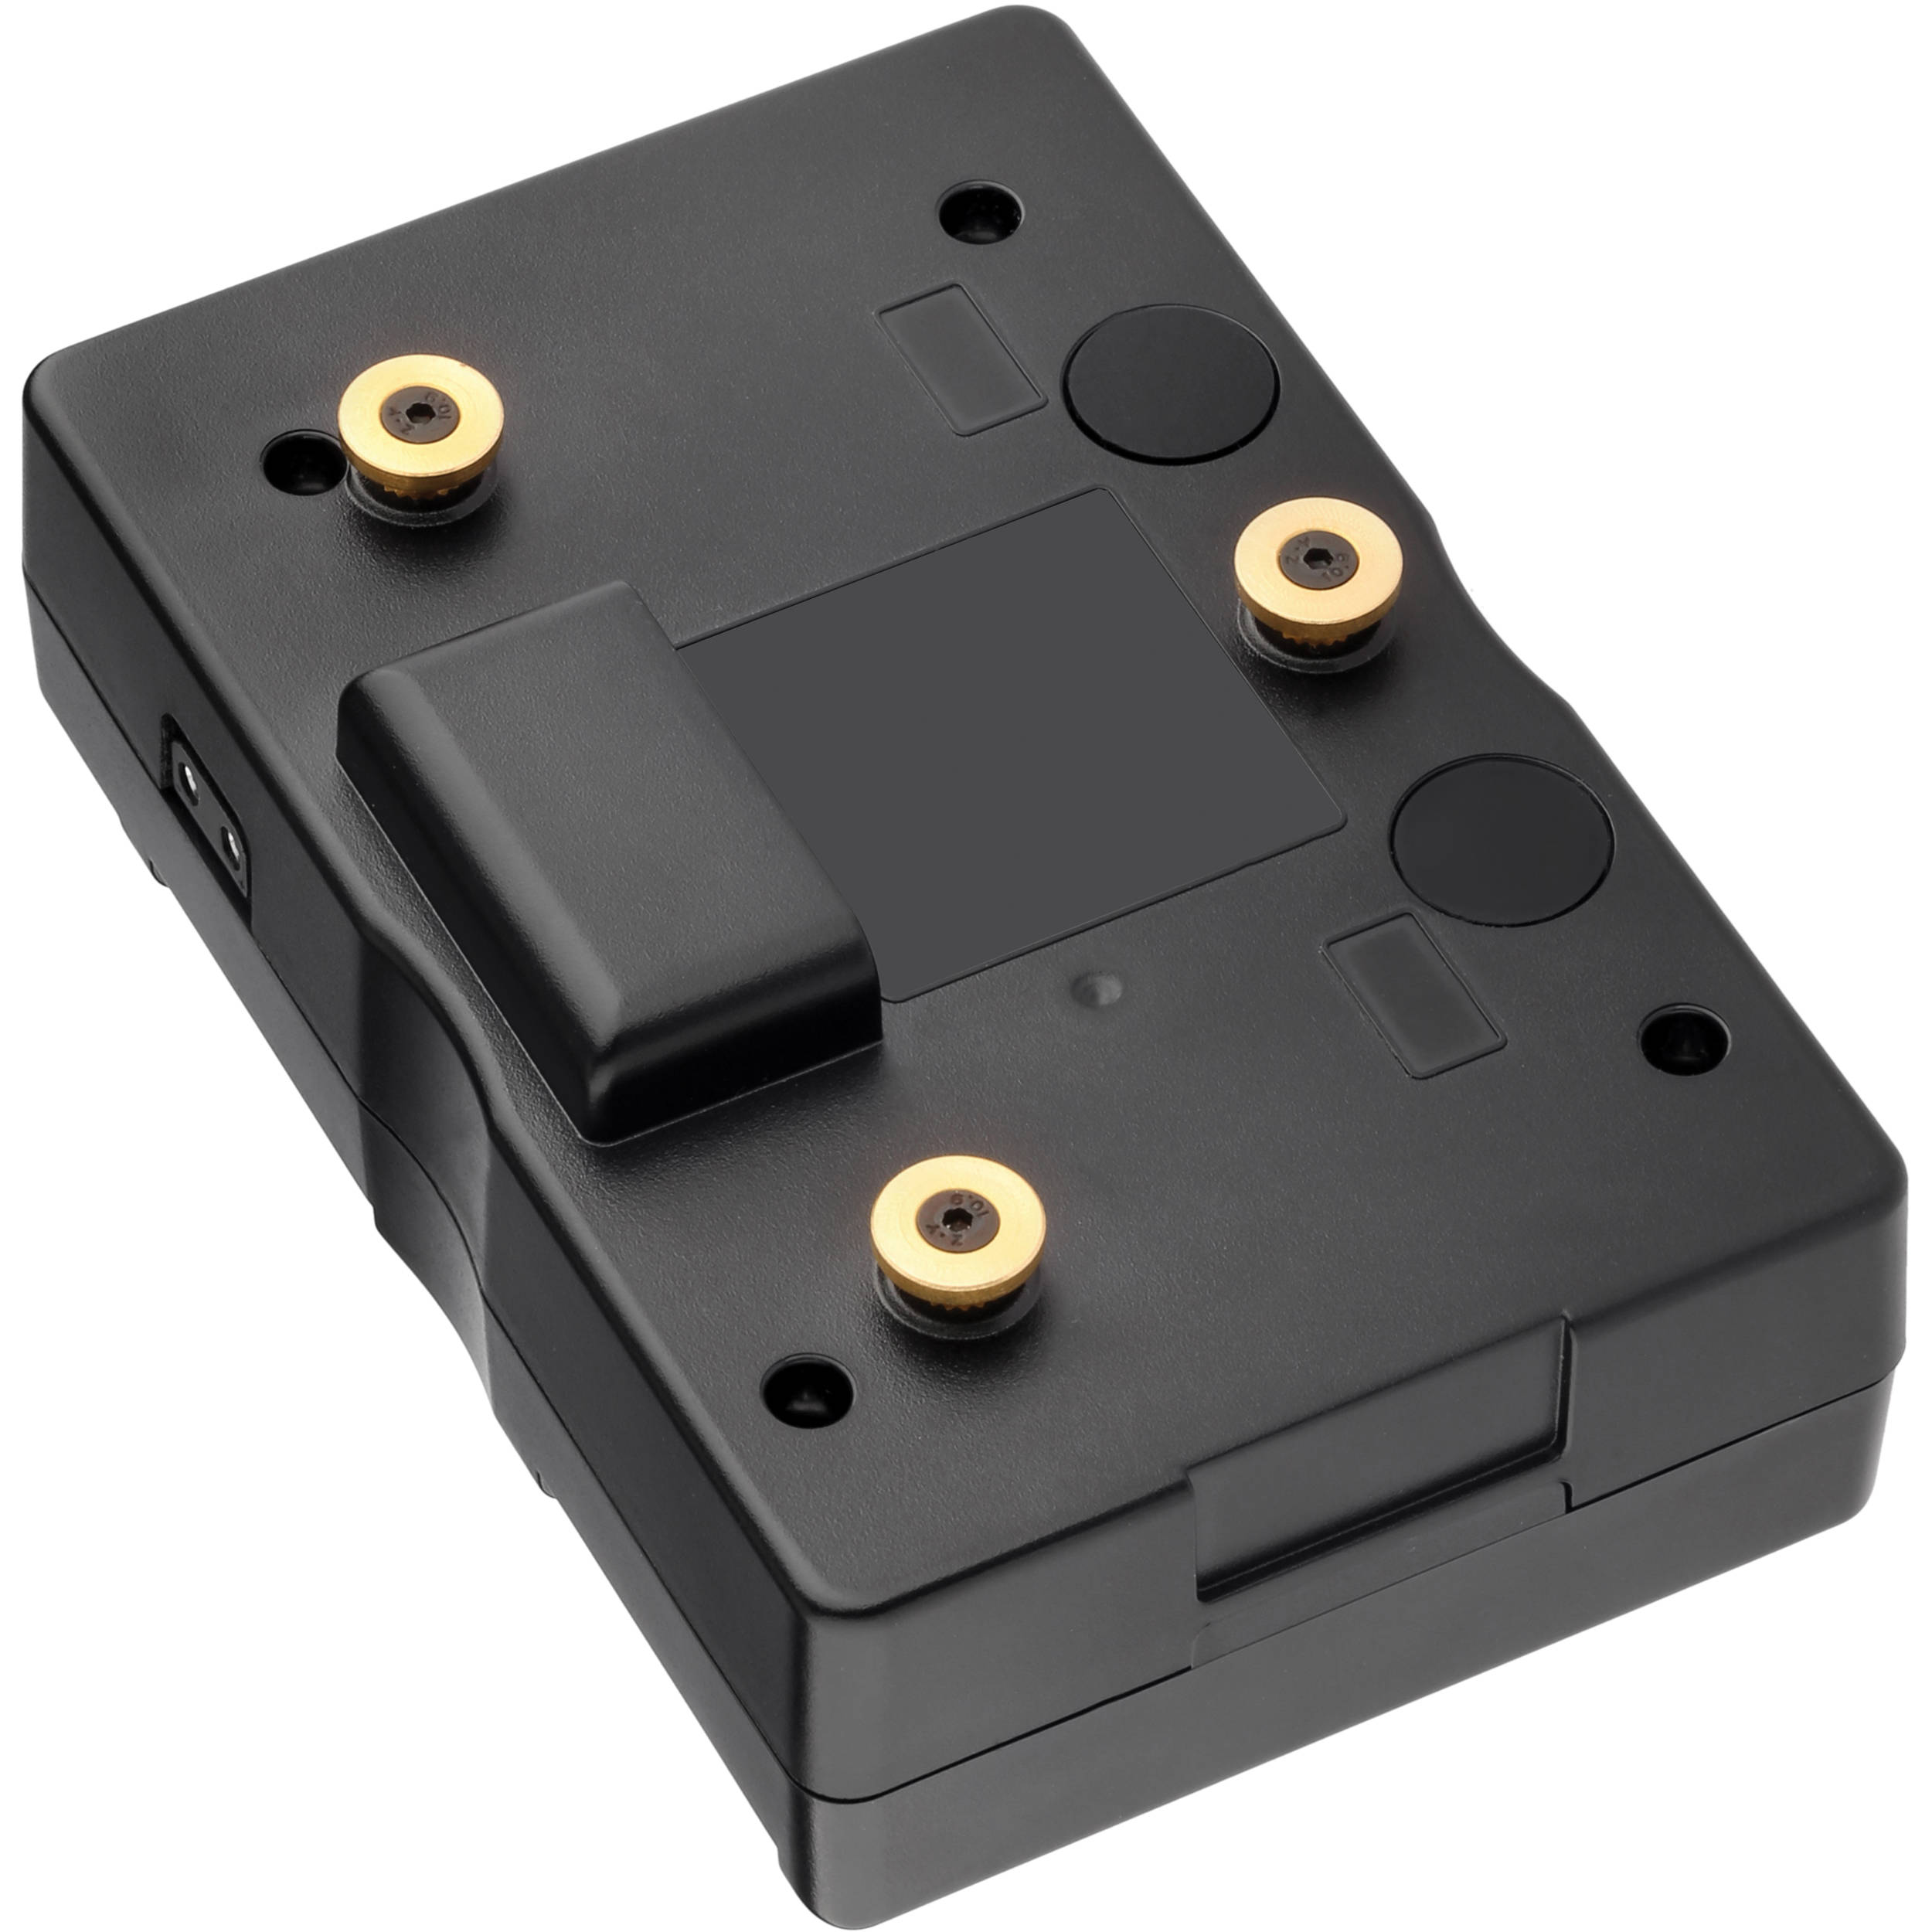 Genaray SpectroLED Essential Sony NP Battery Adapter for Anton Bauer Gold Mount Devices